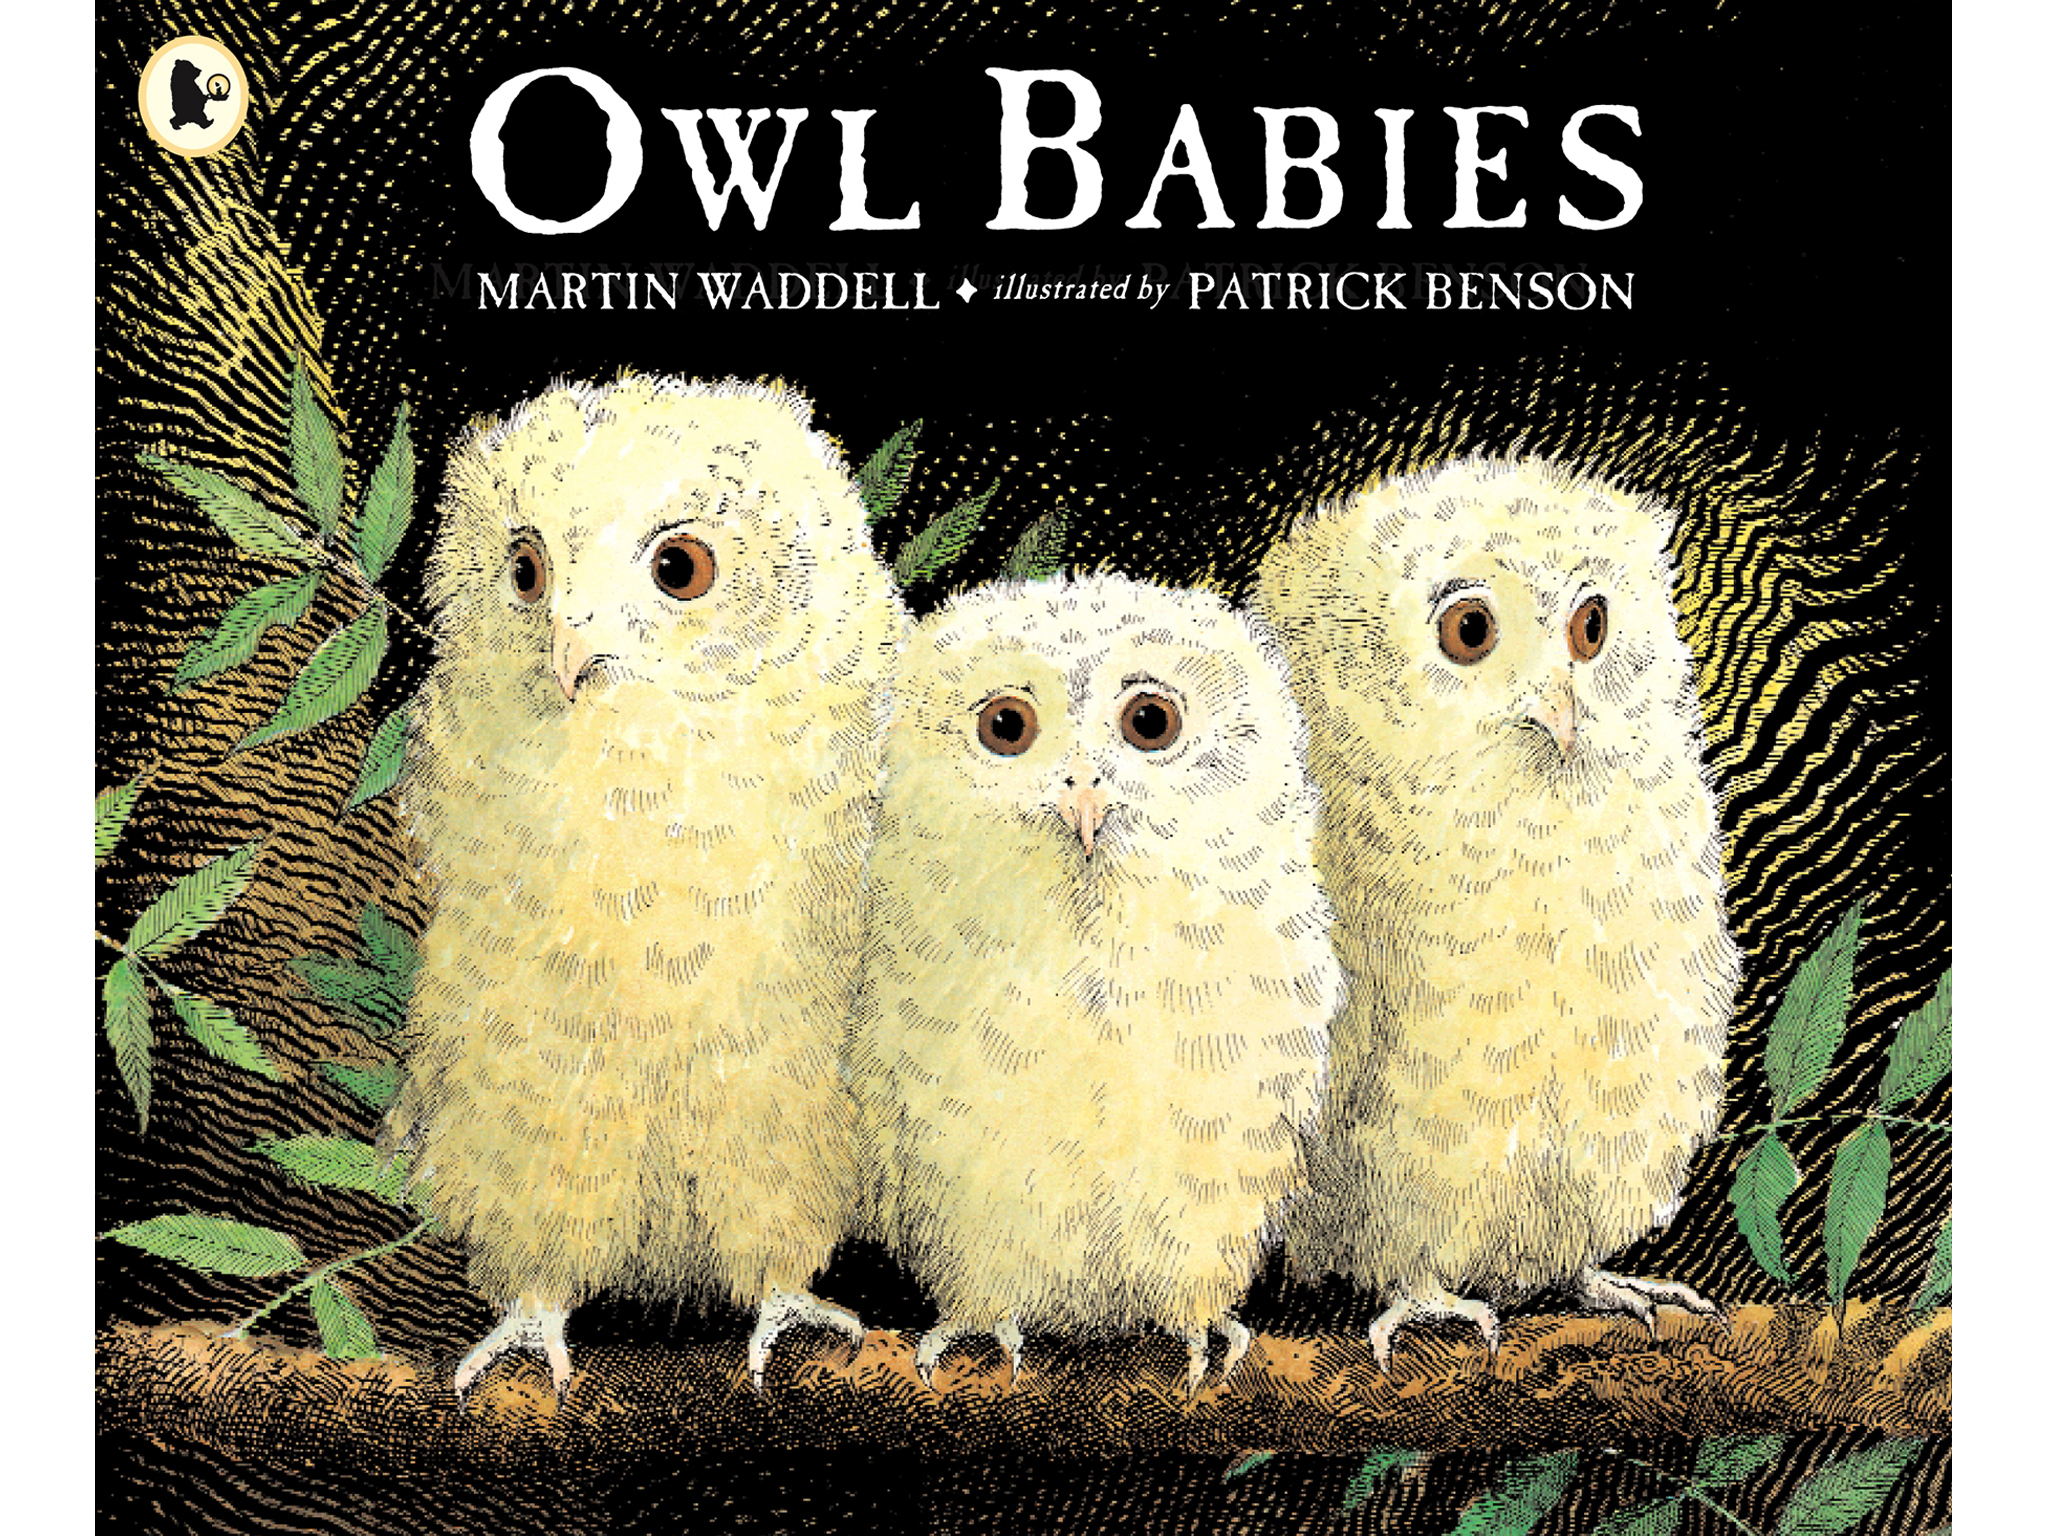 100 Best Childrens Books Owl Babies